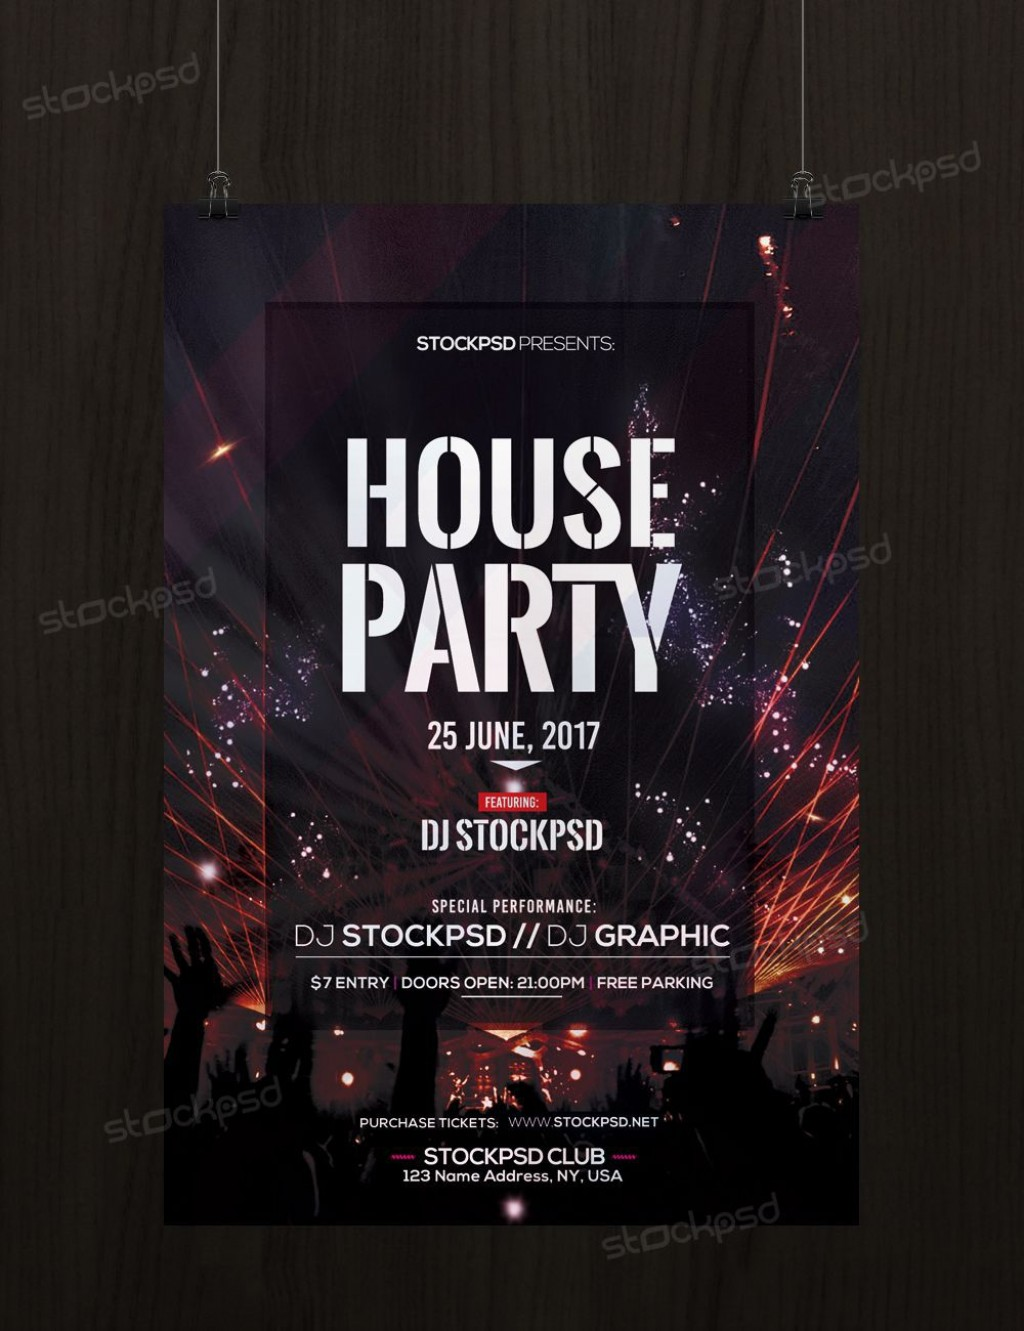 000 Formidable Party Flyer Template Free High Definition  - Photoshop Holiday Christma For Microsoft WordLarge